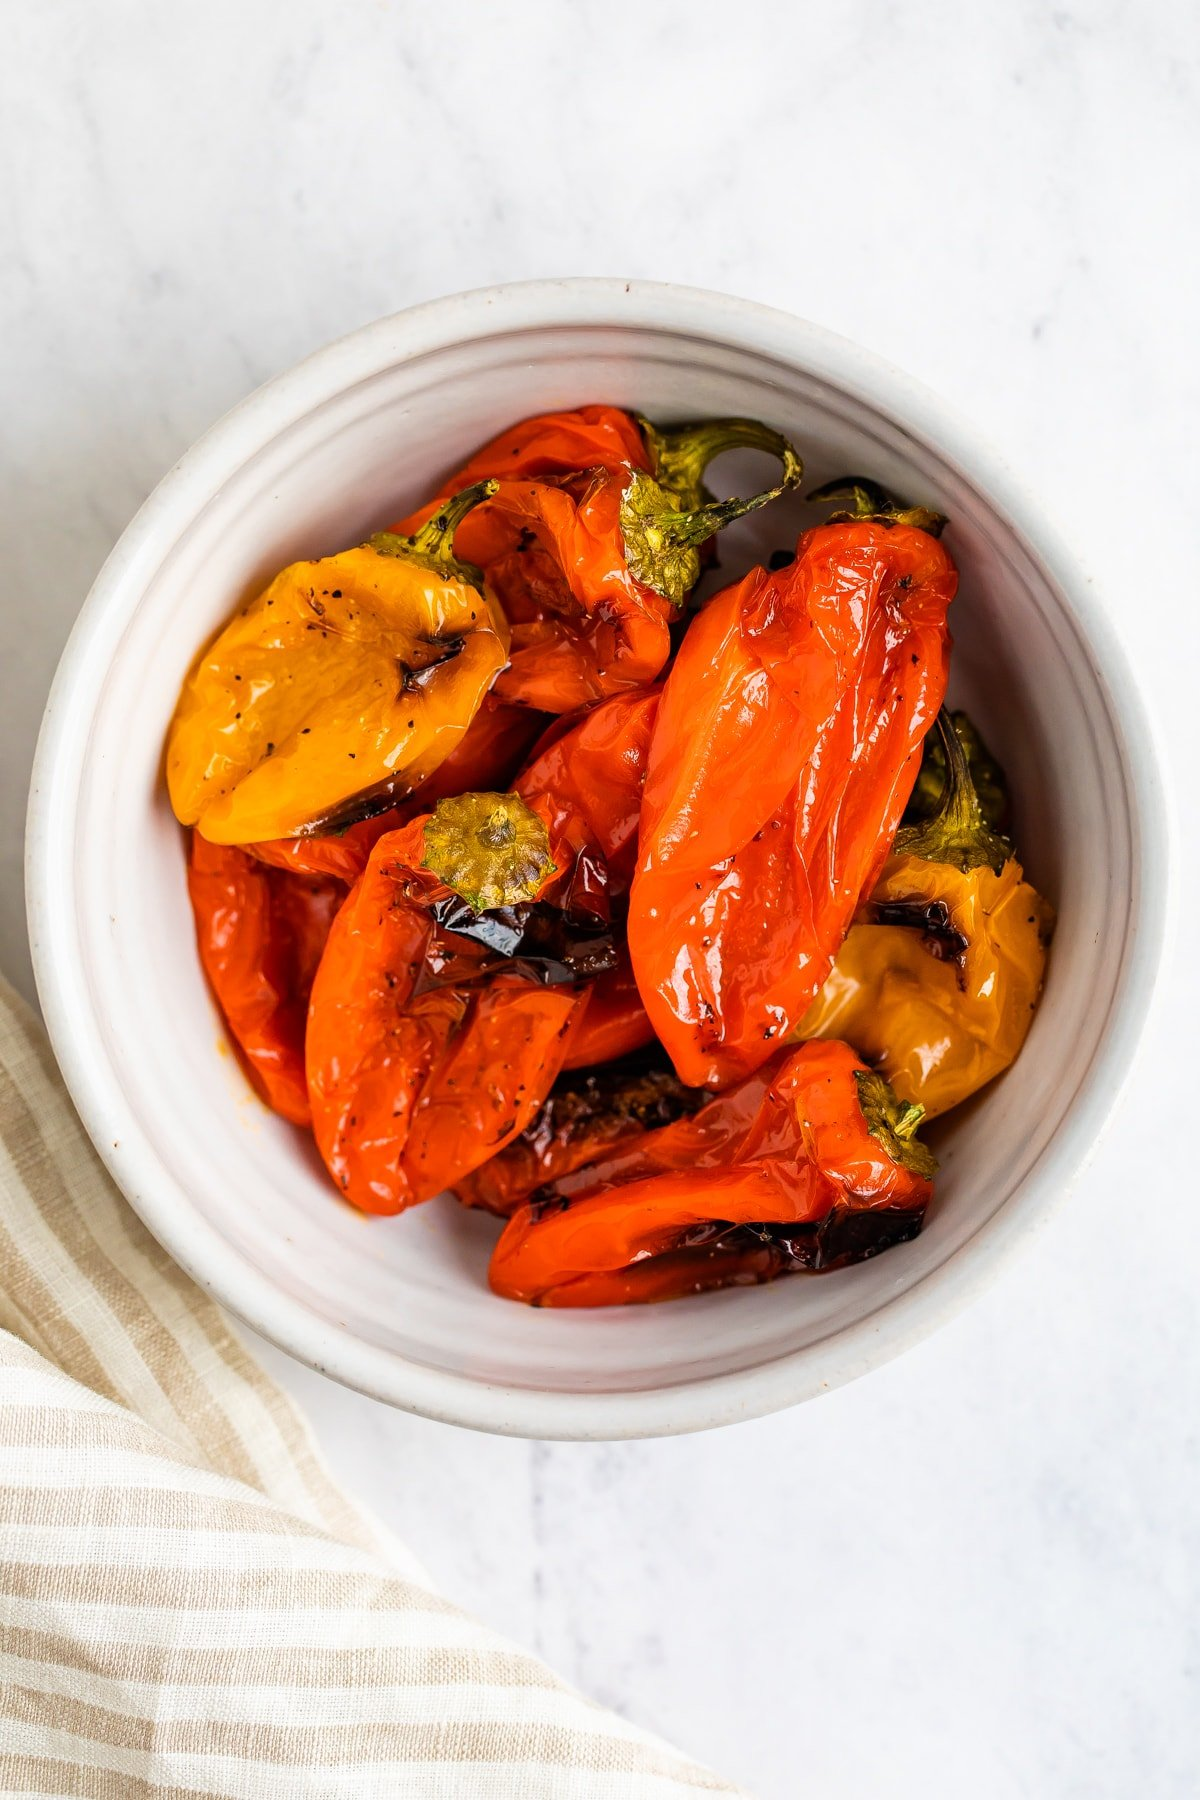 Roasted peppers in a bowl.